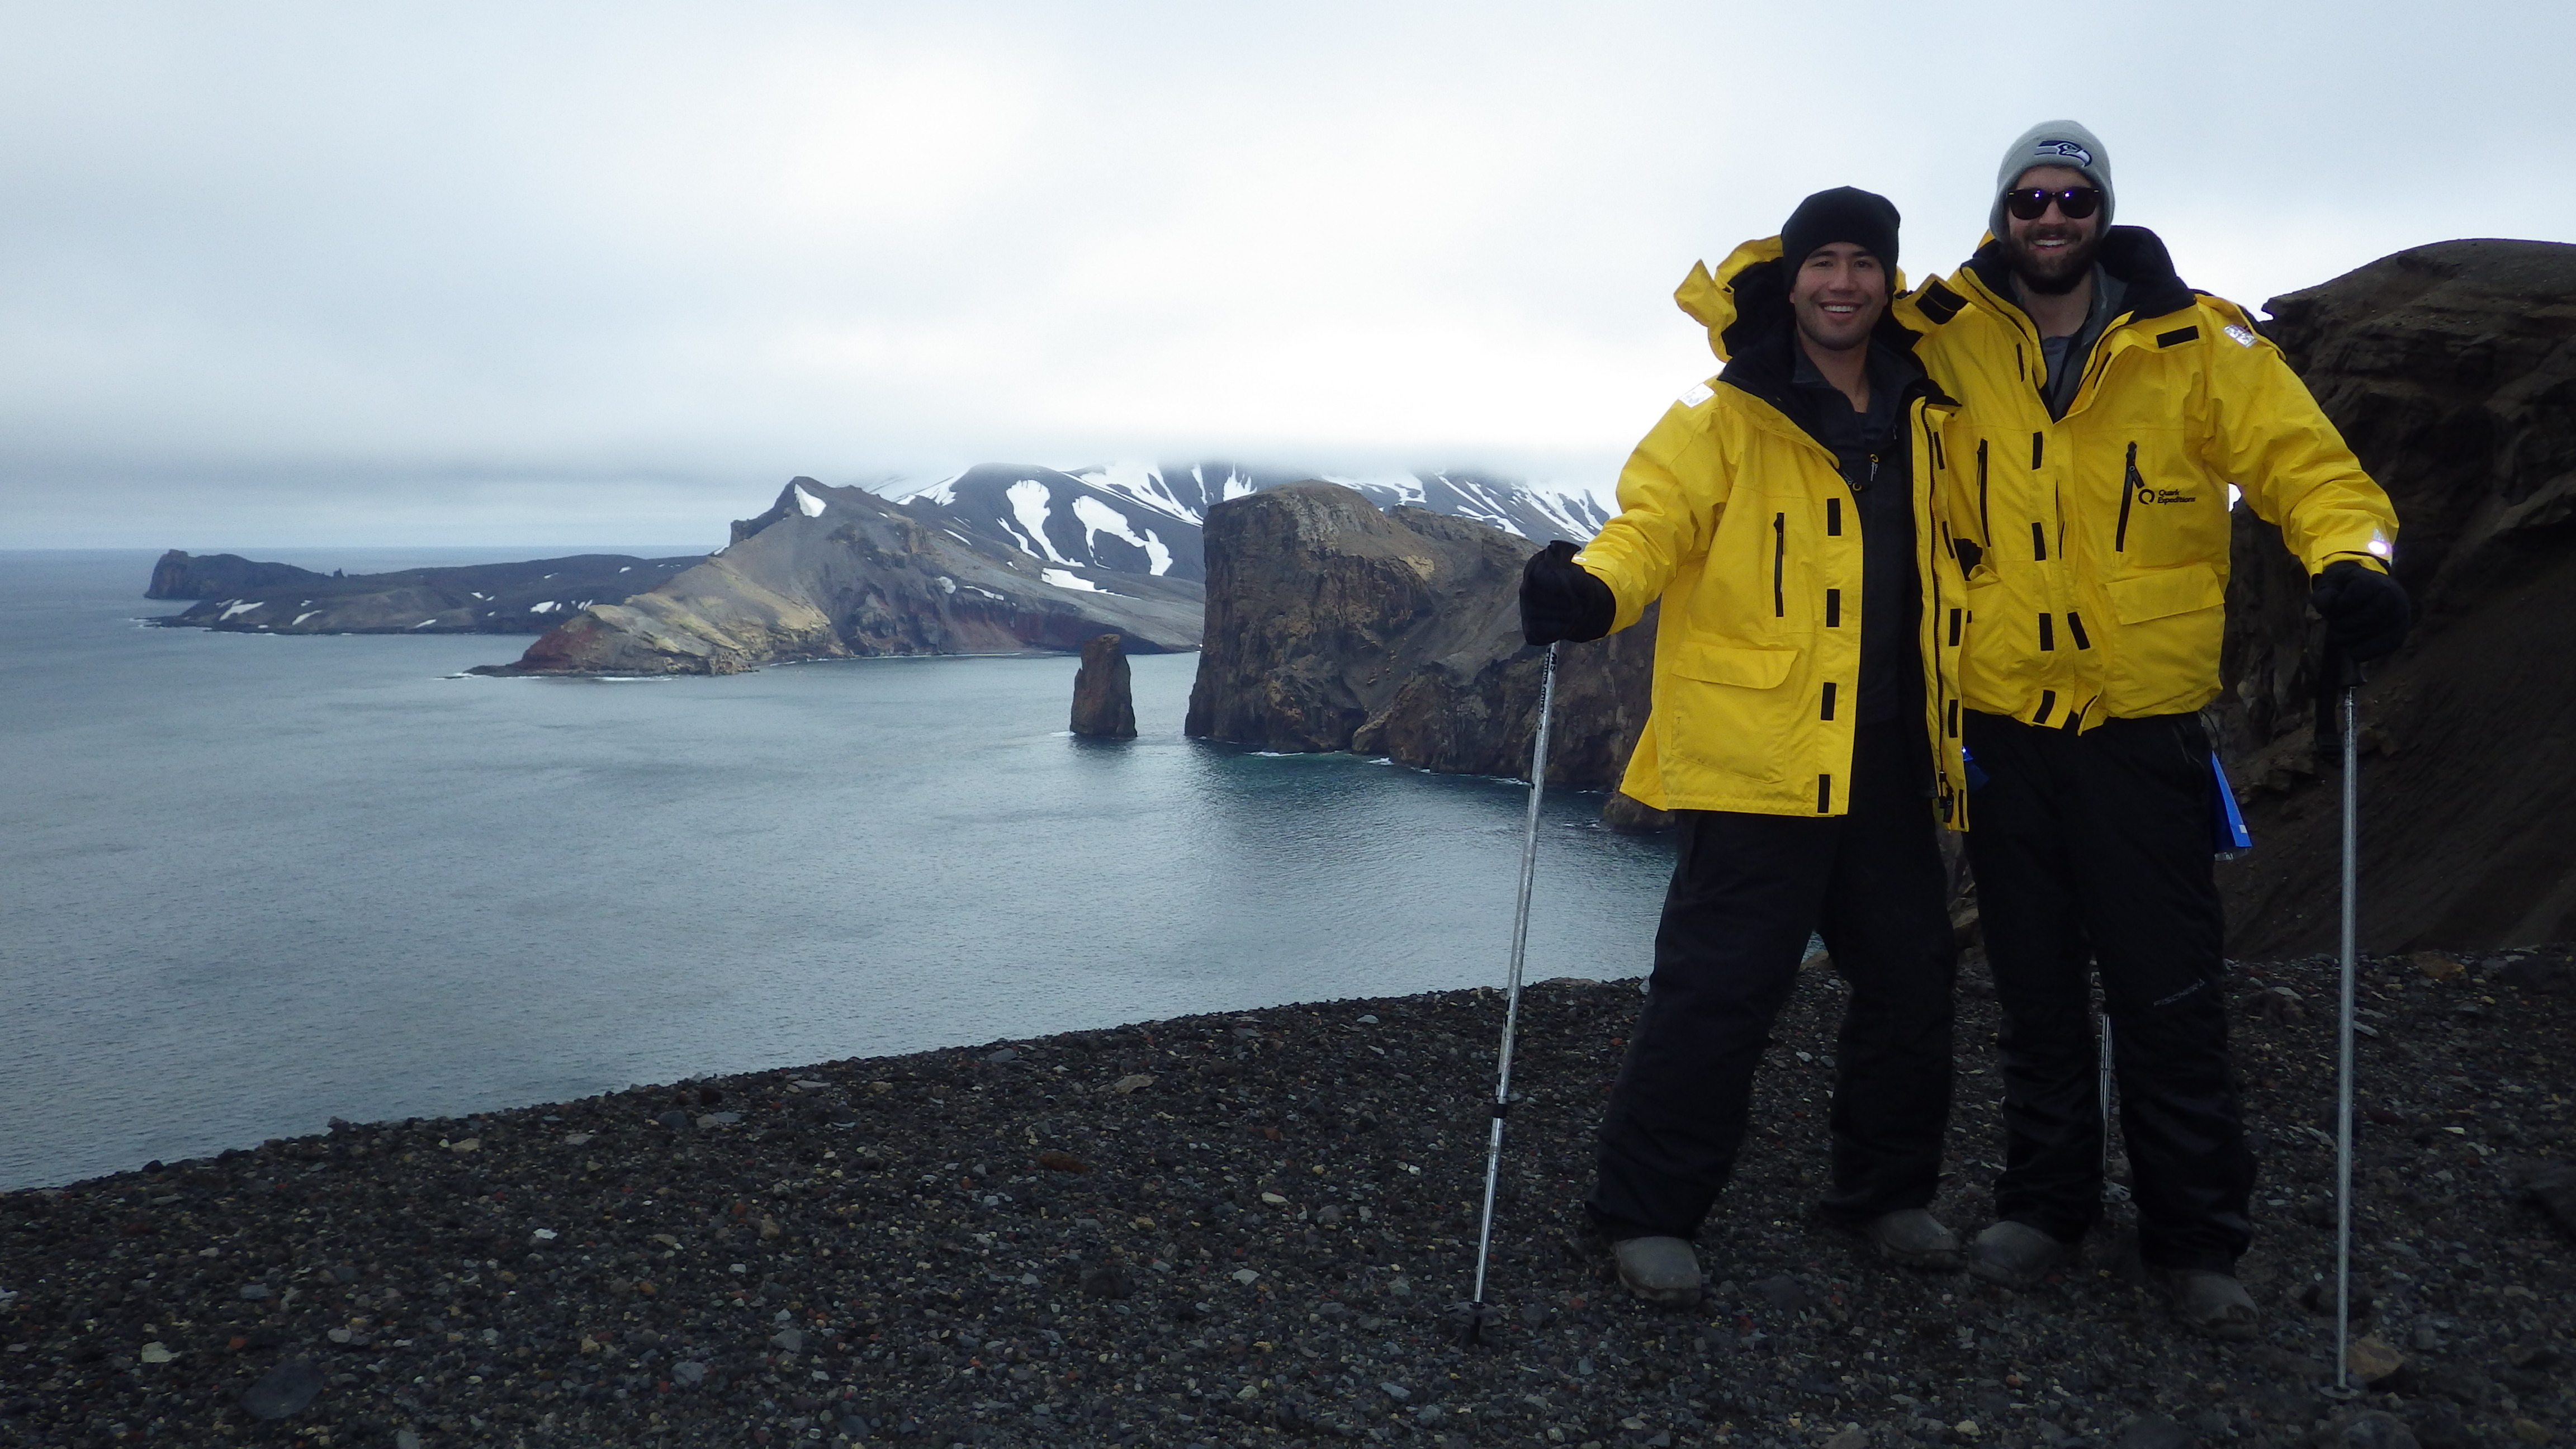 Me and Will. Another preview of Antarctica!